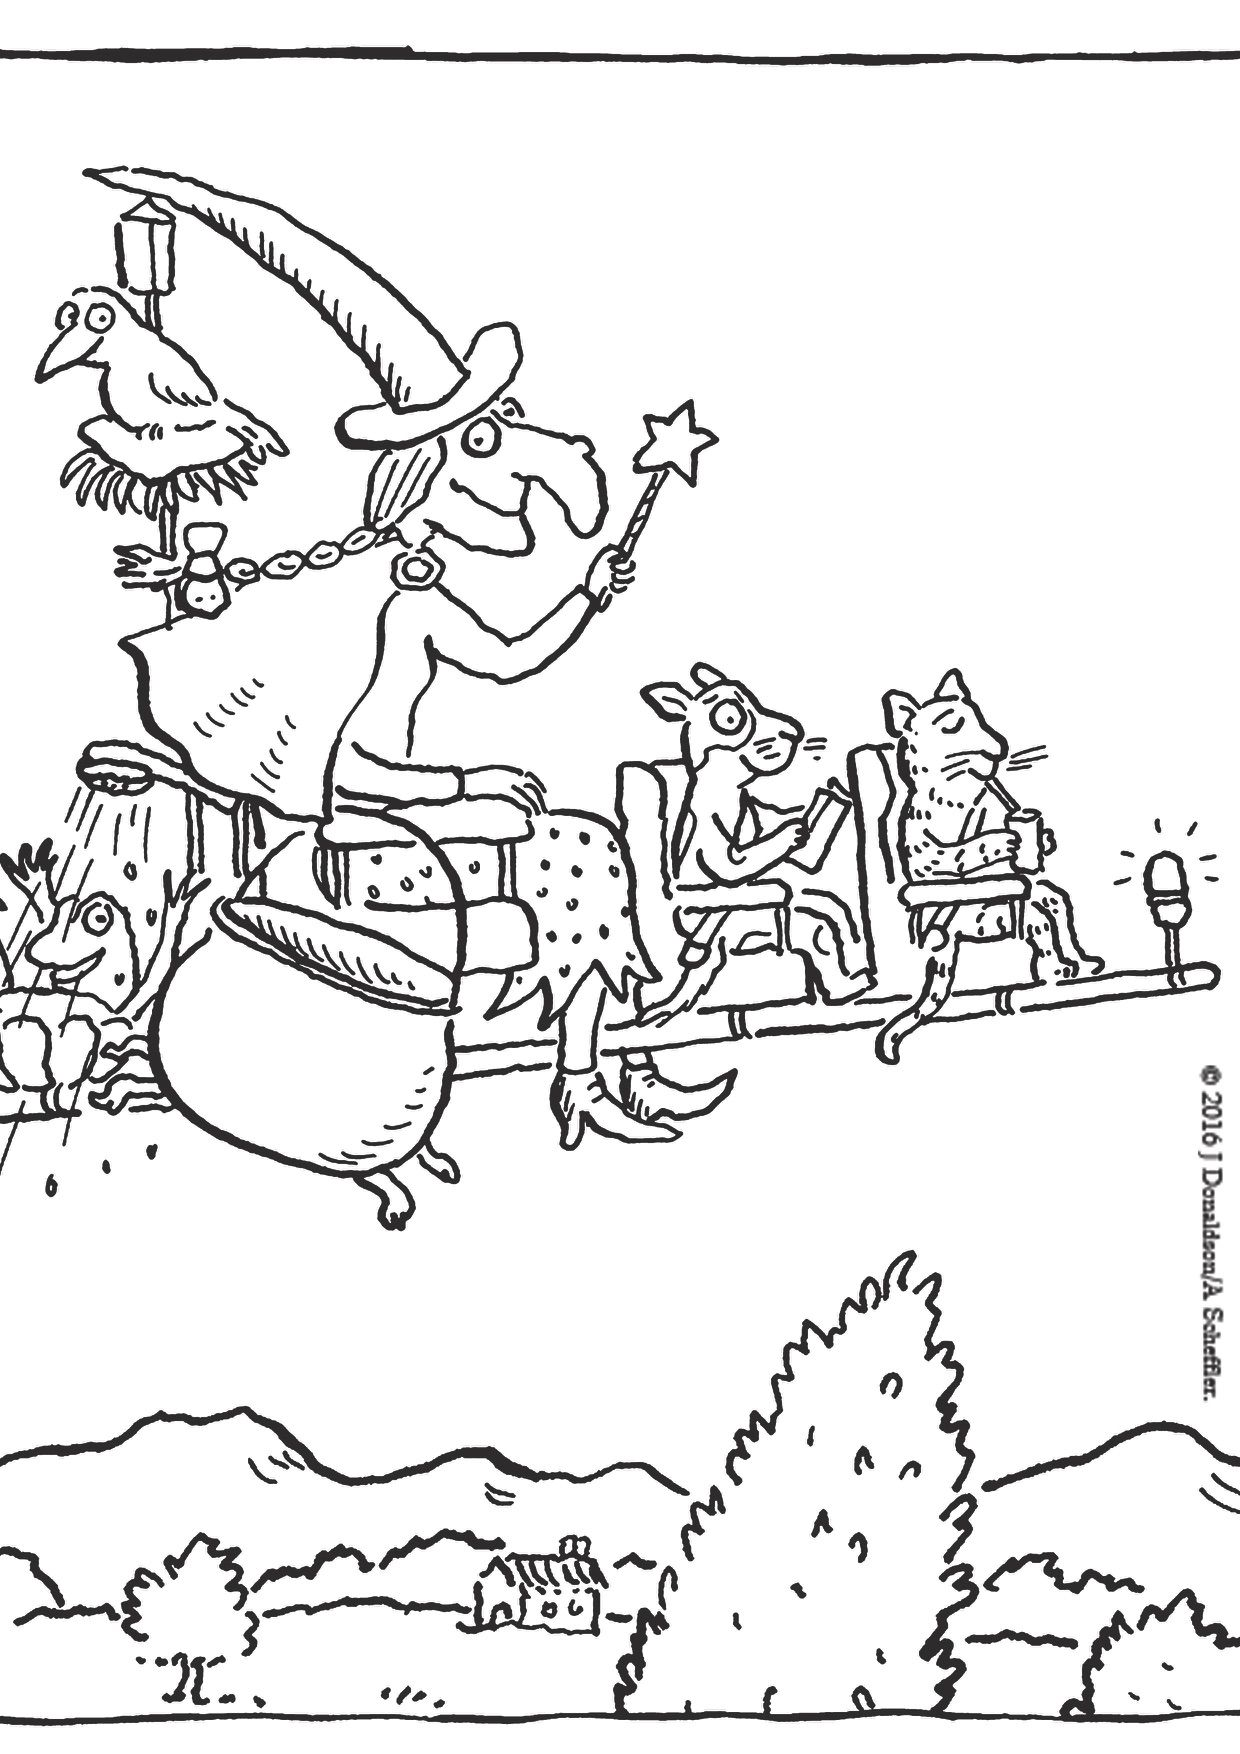 We Ve Created Some Large Room On The Broom Puzzle Pieces For The Little Ones To Colour In And